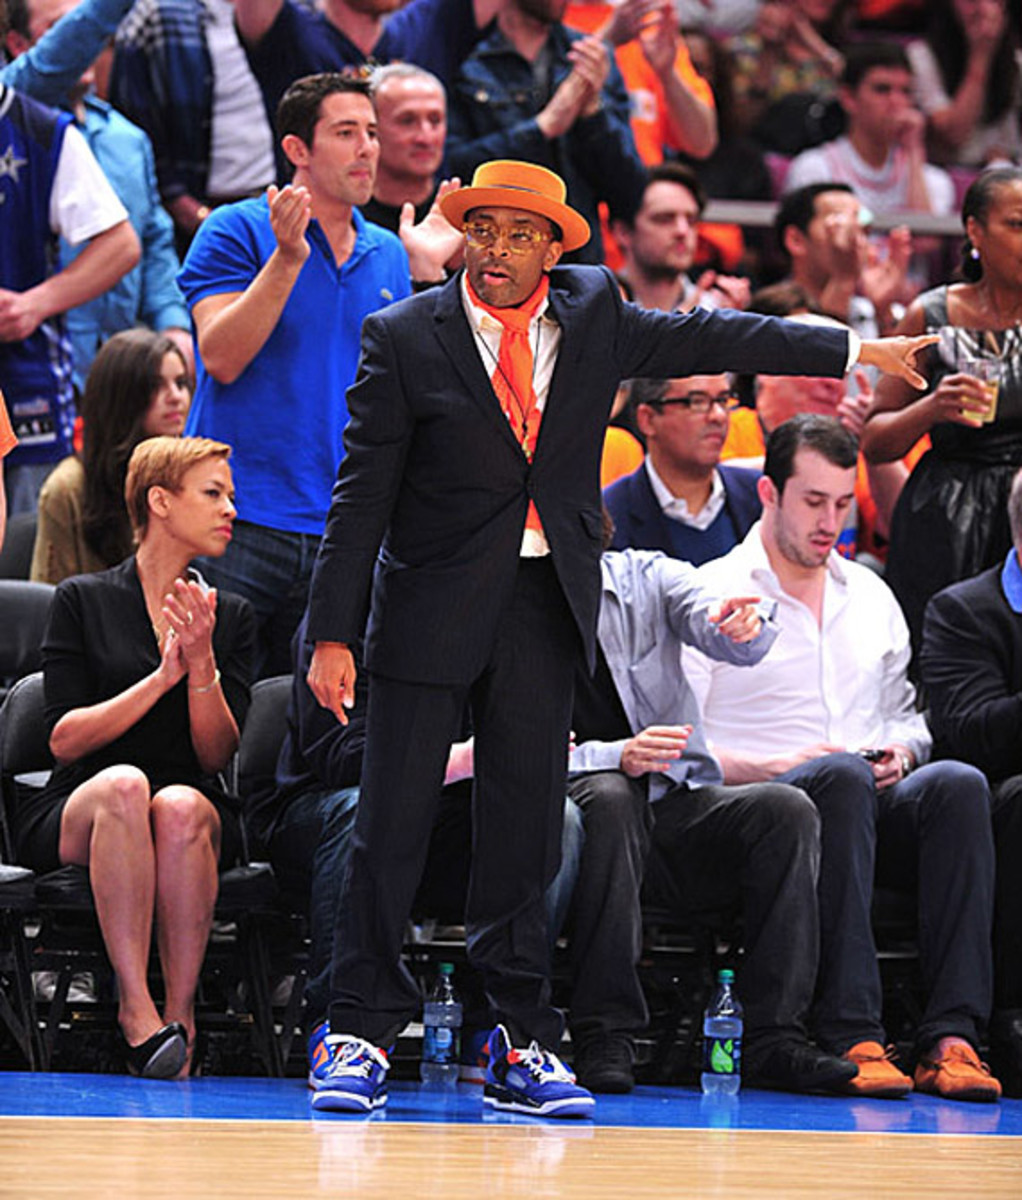 spike-lee-ny-knicks-boston-celtics-05